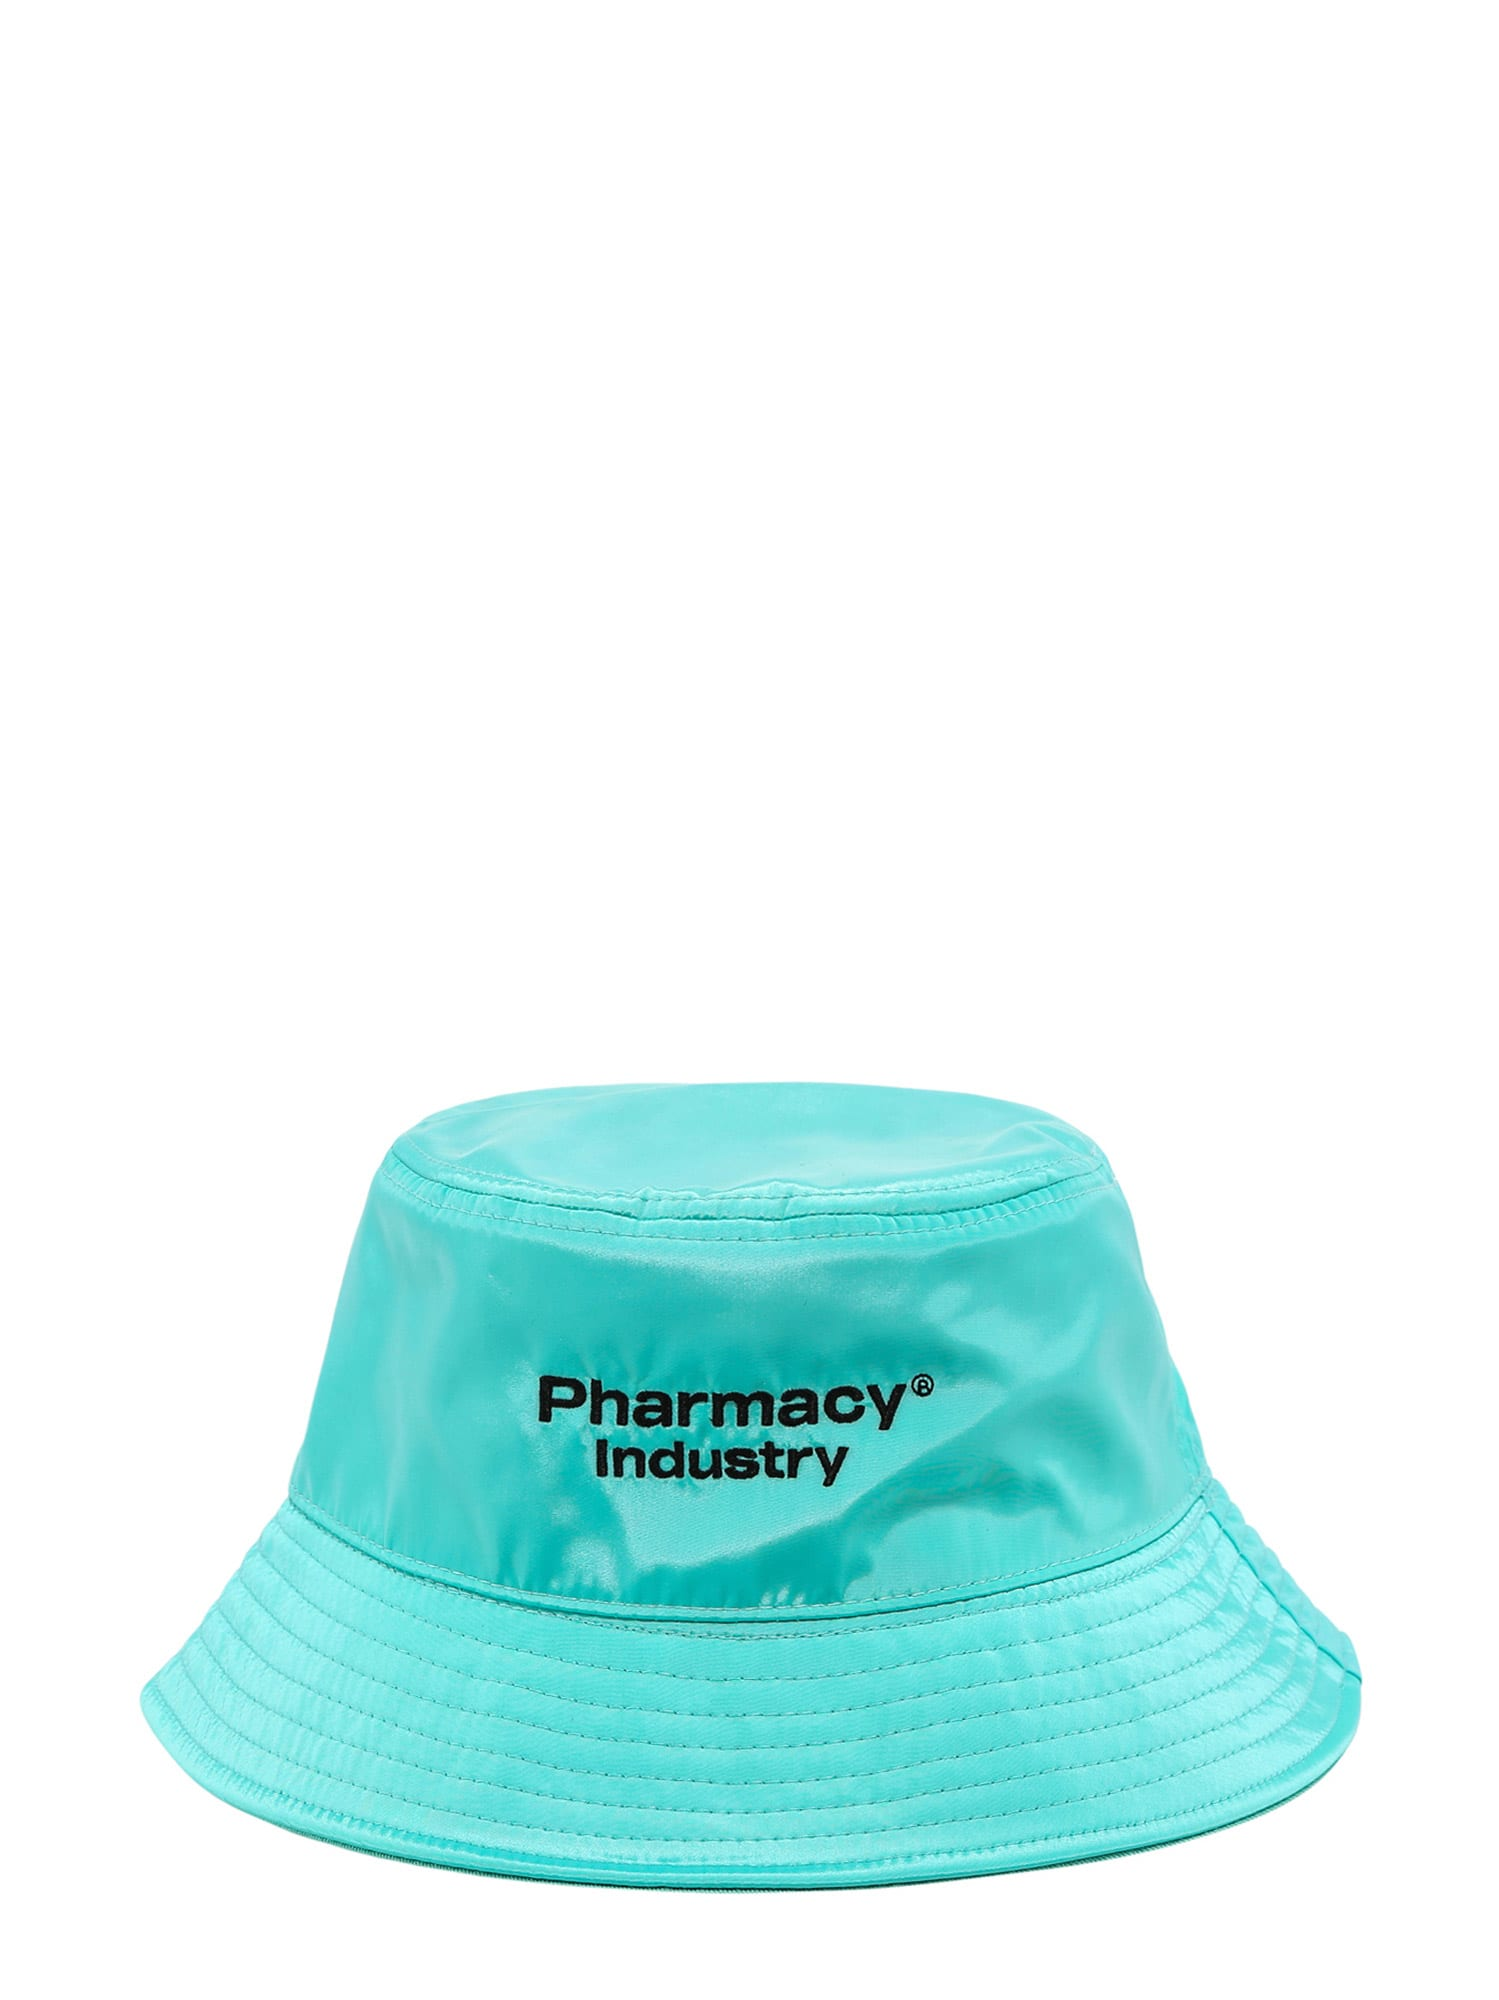 Pharmacy Industry Accessories CLOCHE